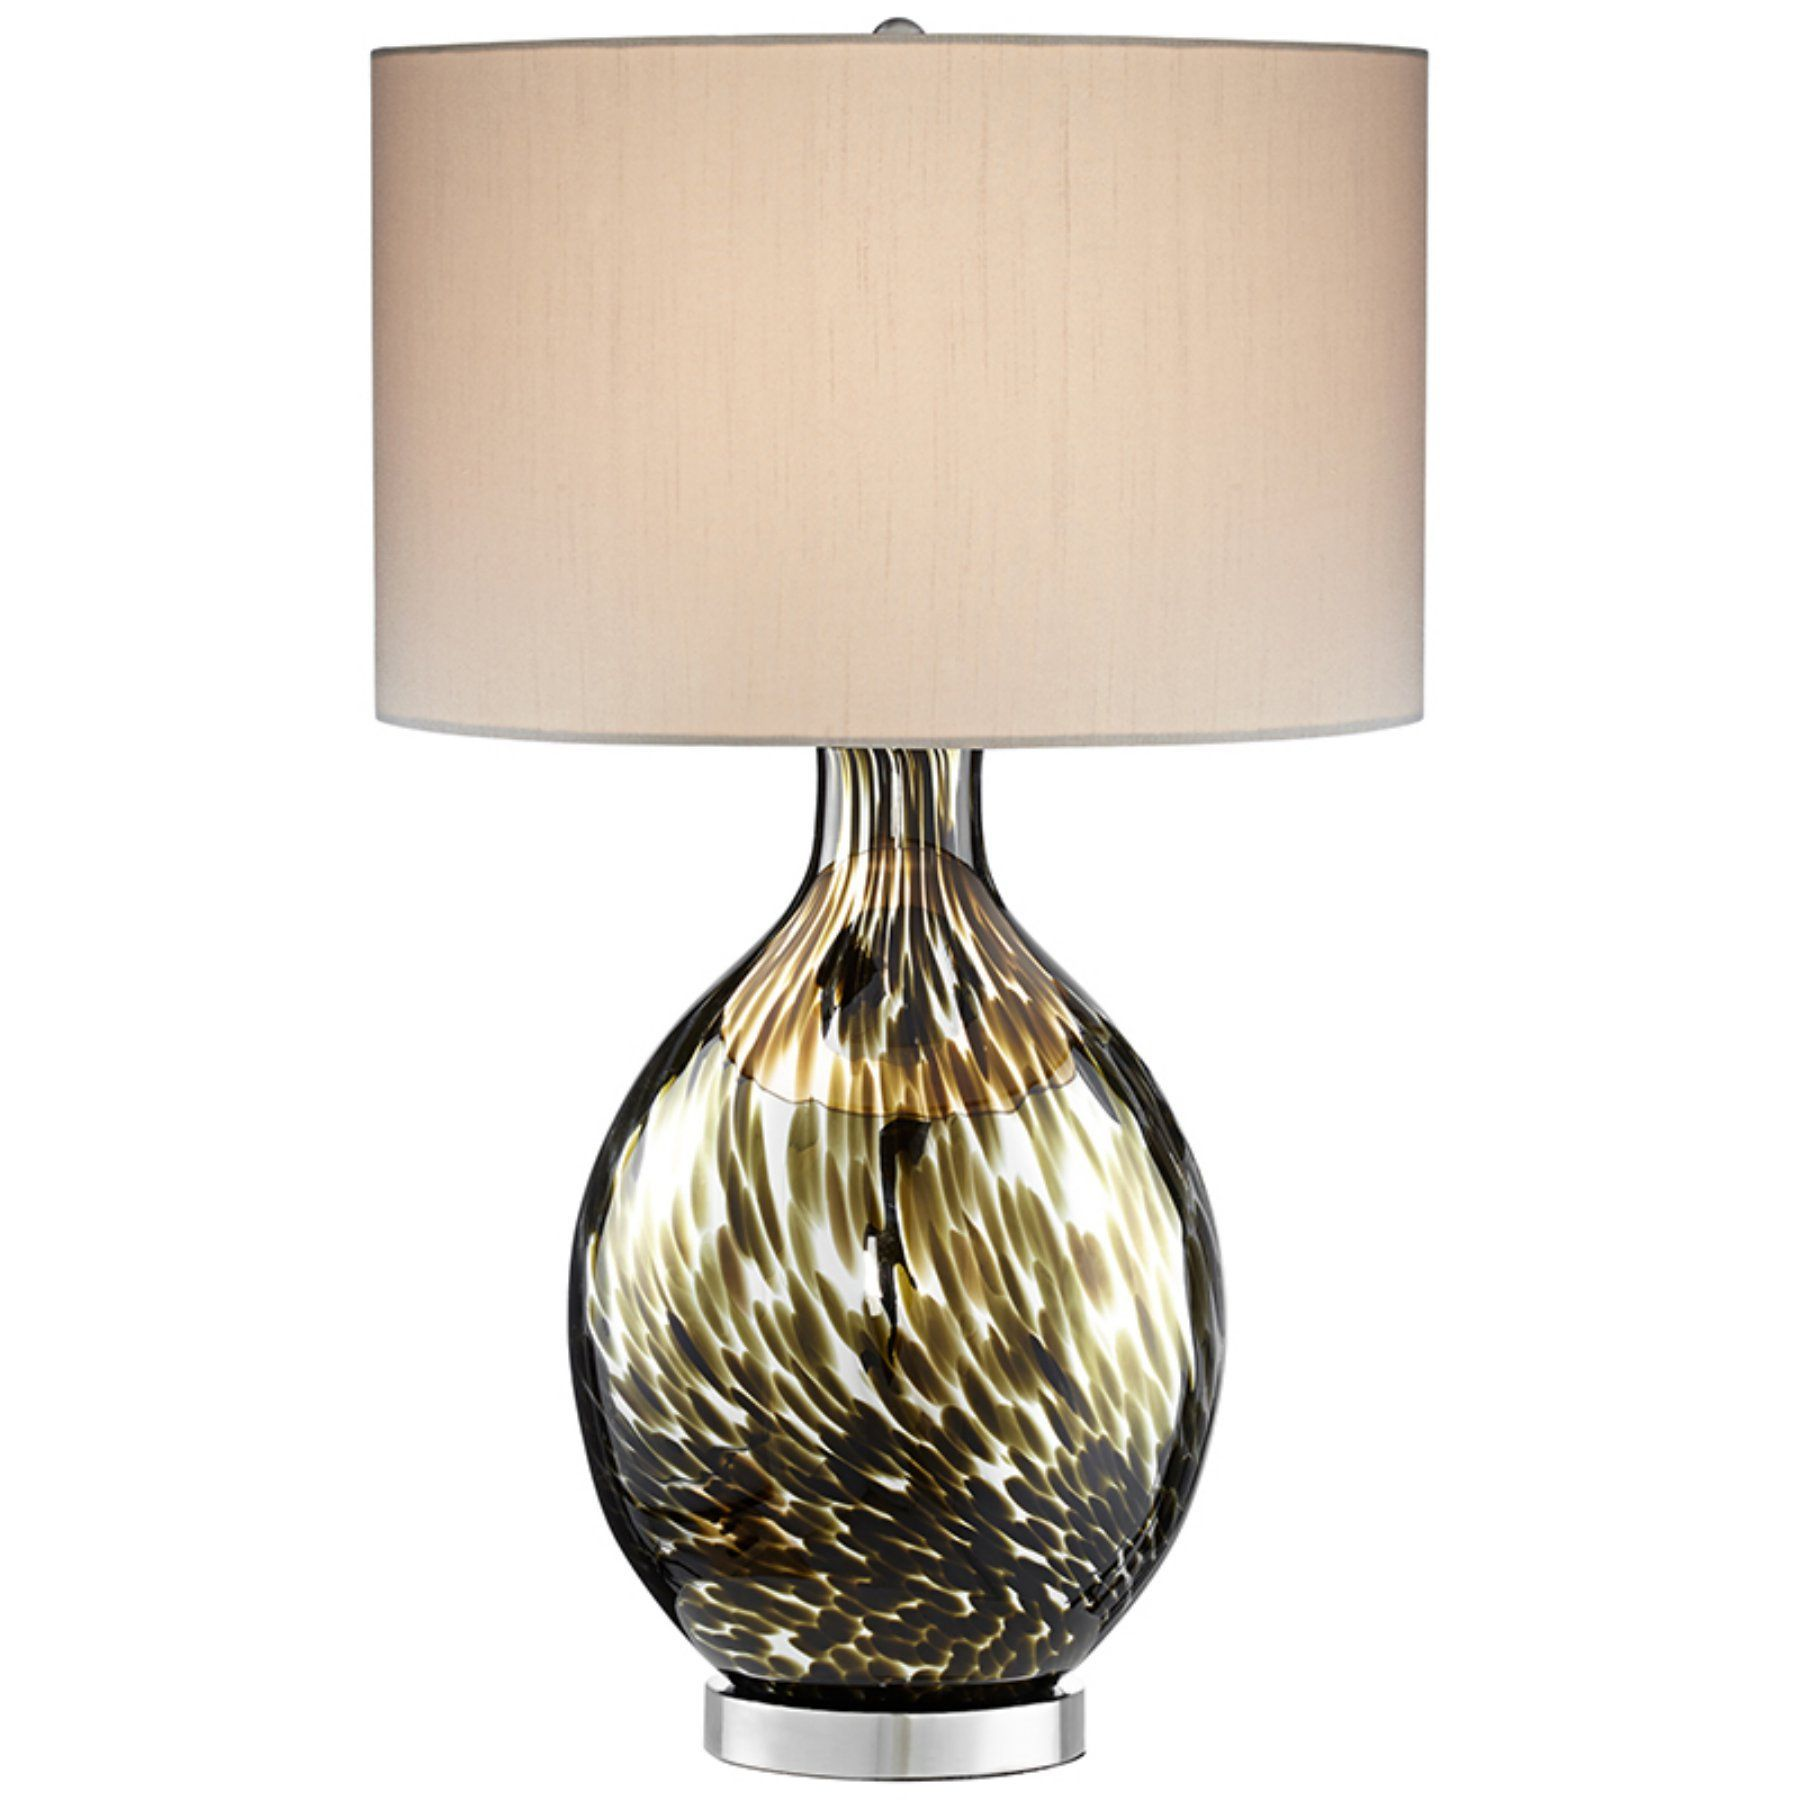 glass magnifying in lamp silver linen table mercury shade inch image item round cfm high shown metis pacific beige lighting finish and light coast